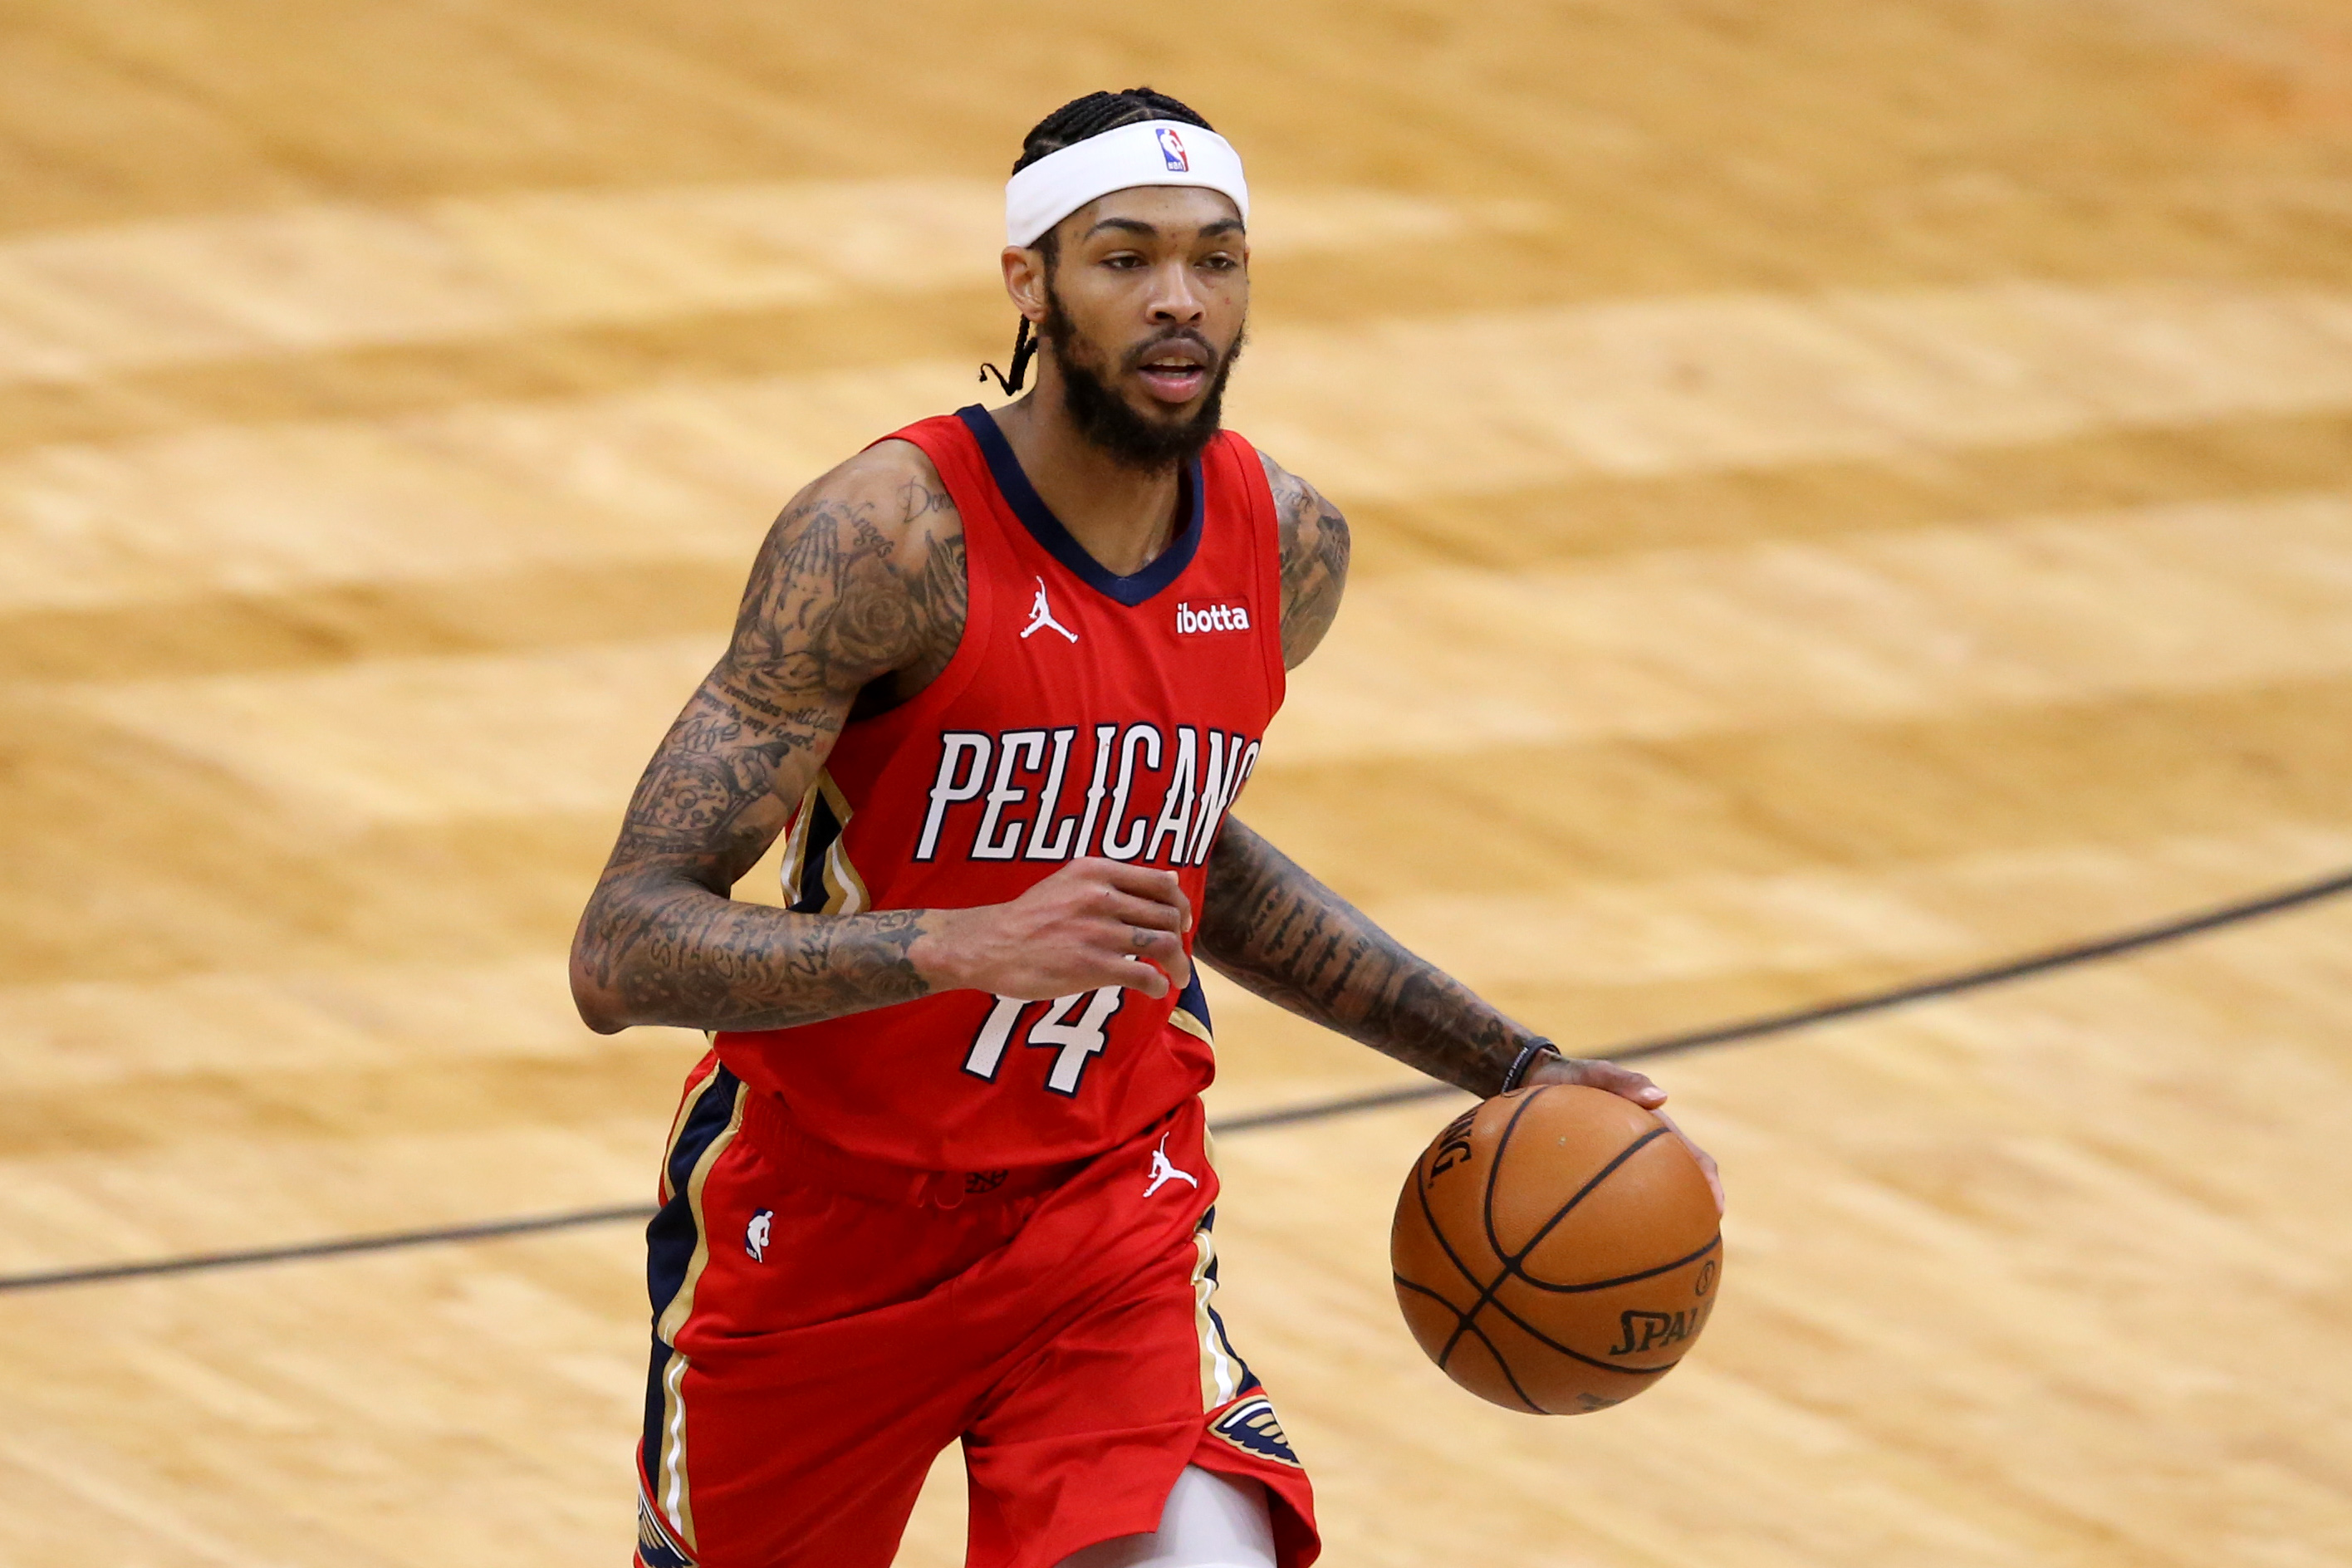 Jan 30, 2021; New Orleans, Louisiana, USA; New Orleans Pelicans forward Brandon Ingram (14) dribbles up court in the third quarter against the Houston Rockets at the Smoothie King Center.